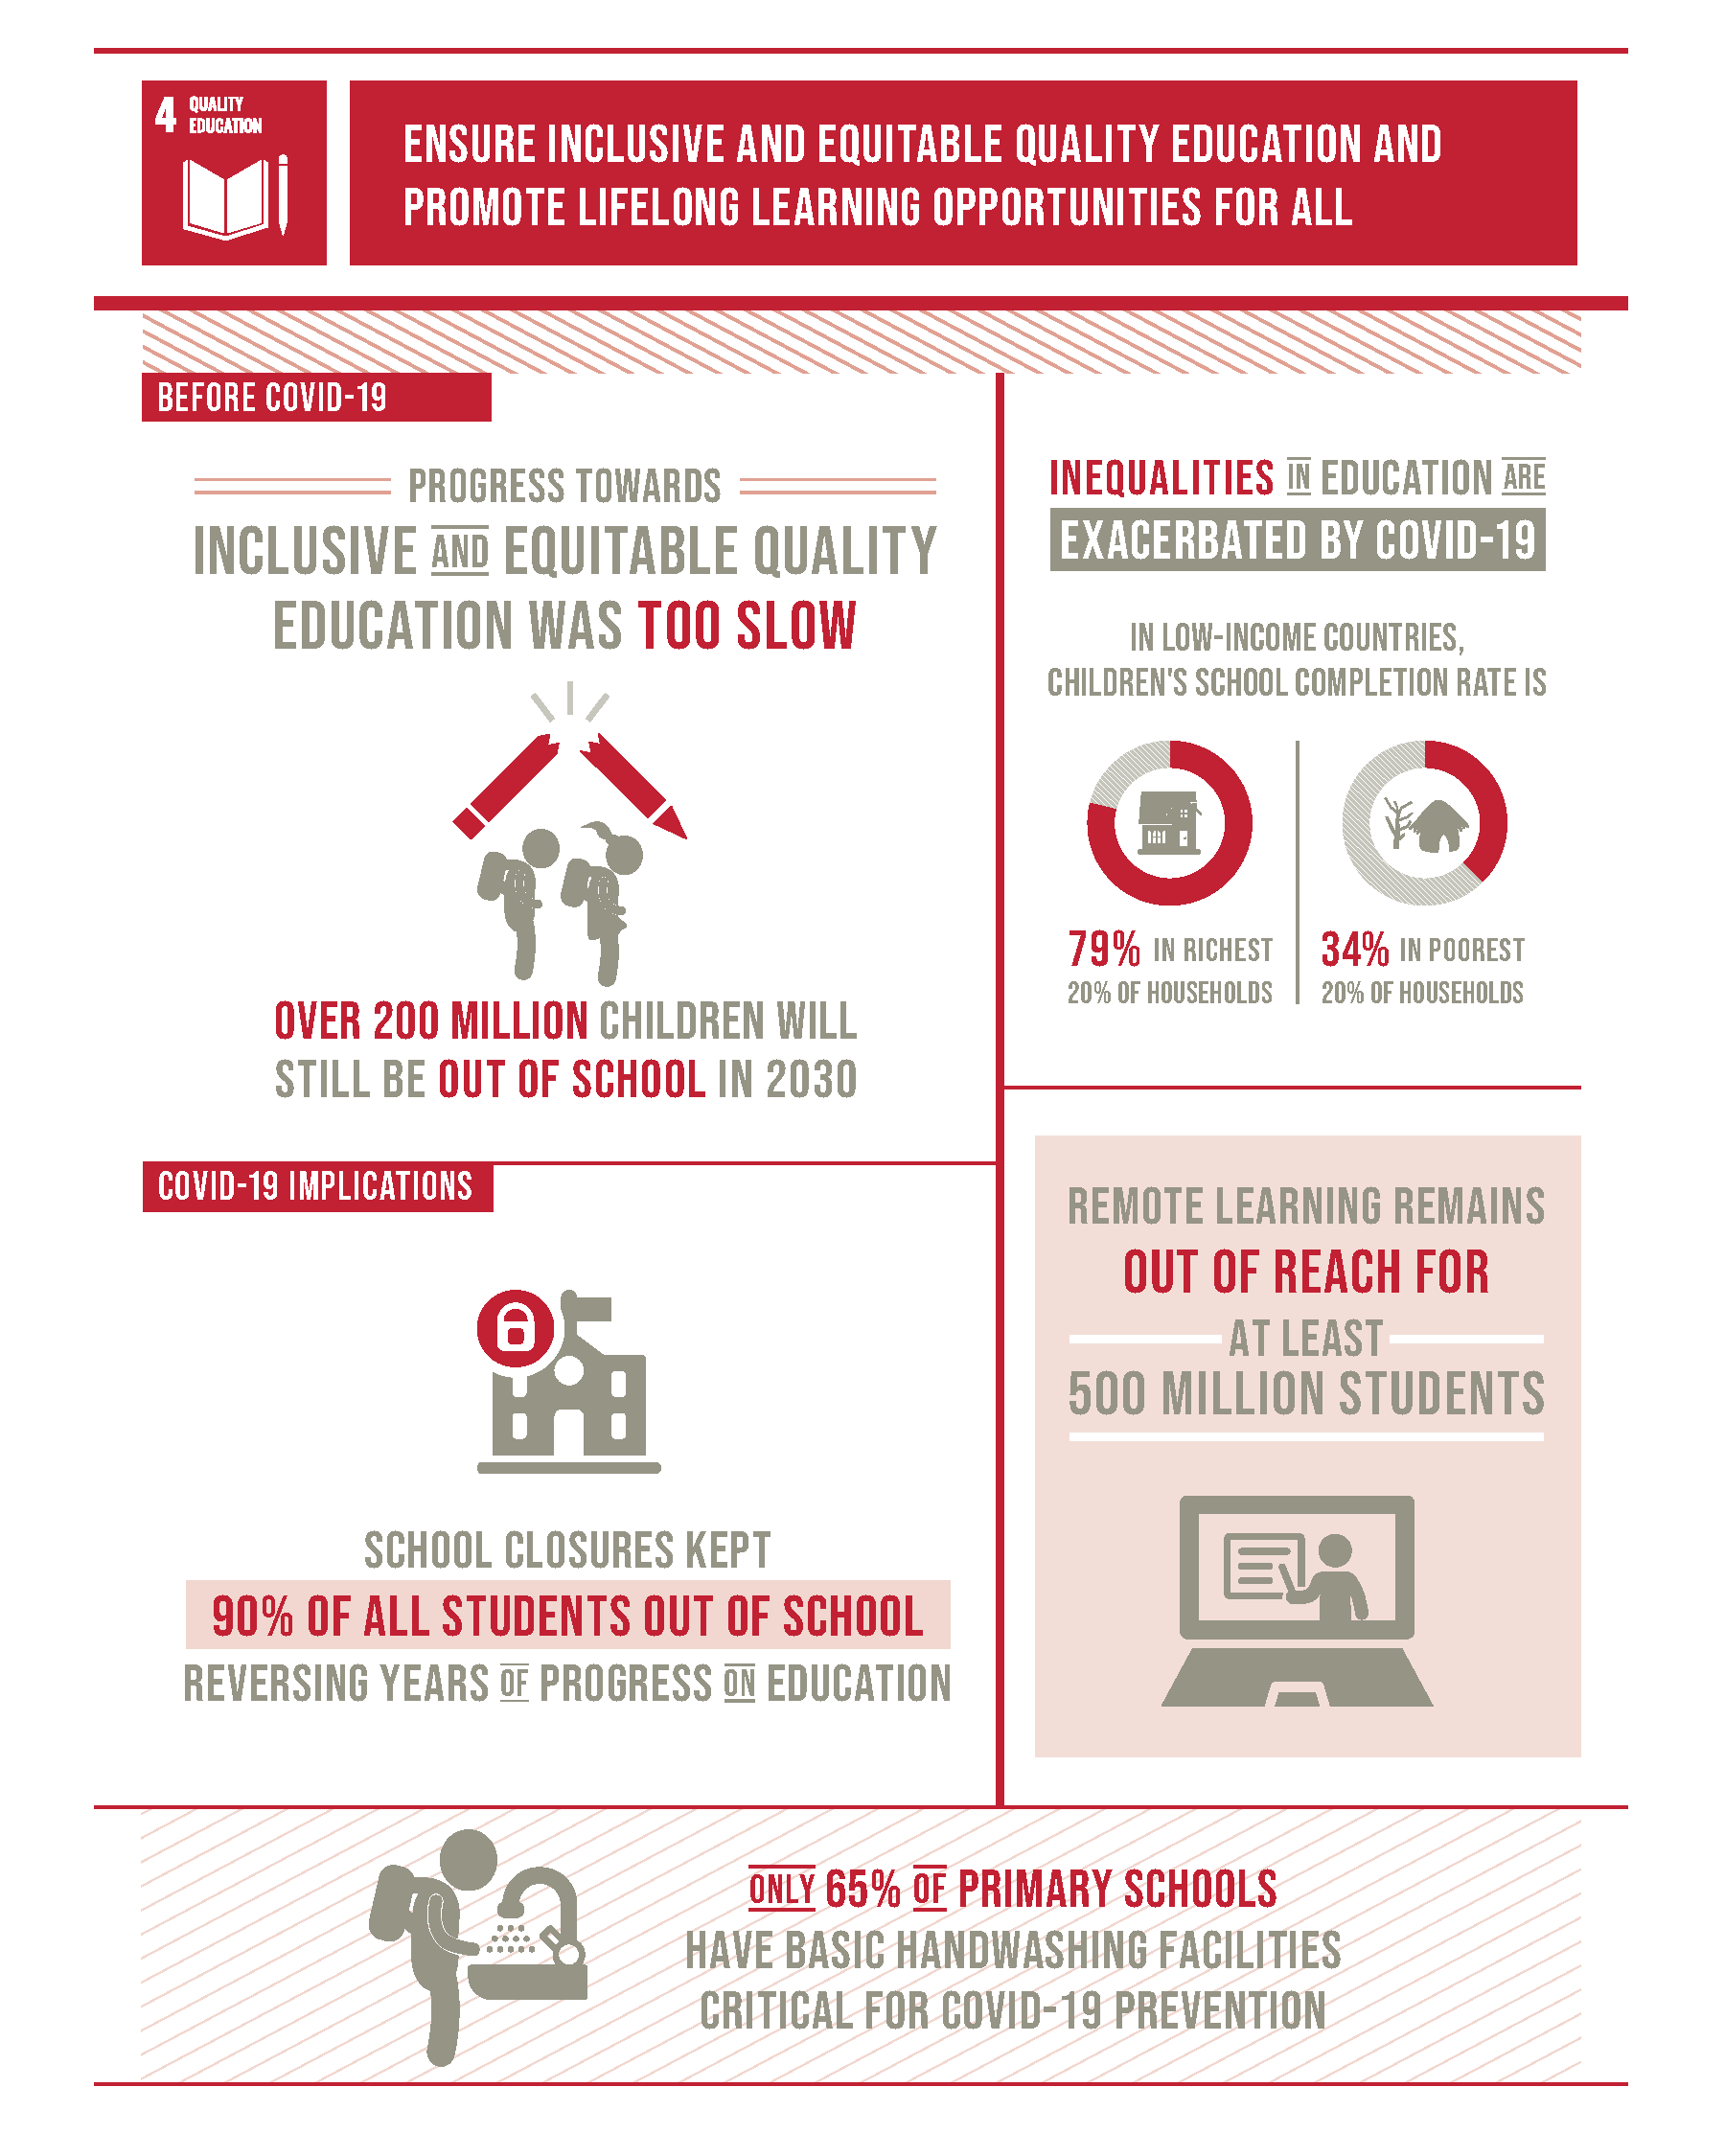 Goal 4 infographic, source: https://unstats.un.org/sdgs/report/2020/The-Sustainable-Development-Goals-Report-2020.pdf